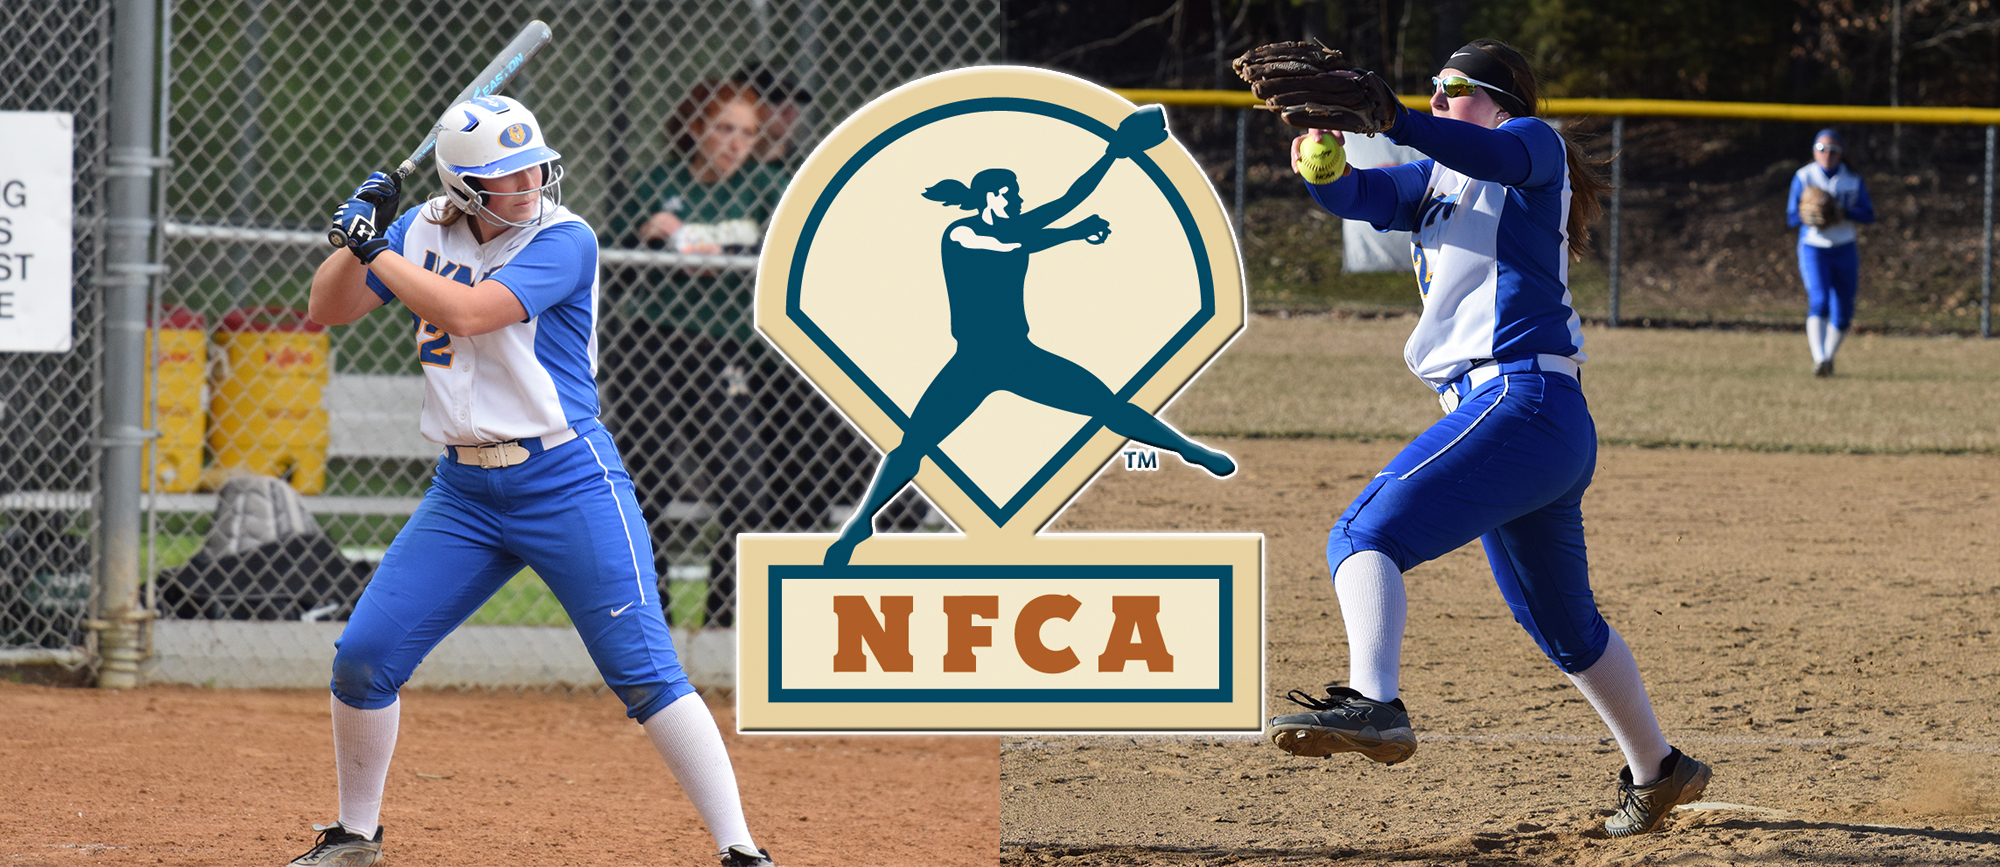 Aimee Kistner Named to NFCA All-New England Third Team